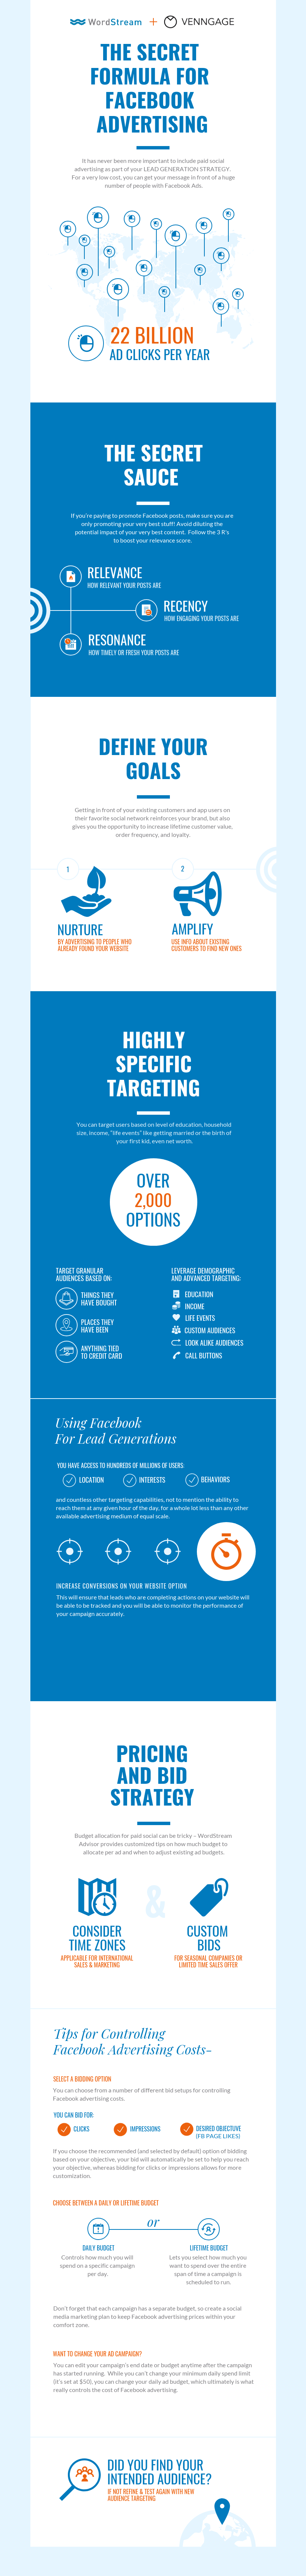 Facebook Advertising Infographic Template